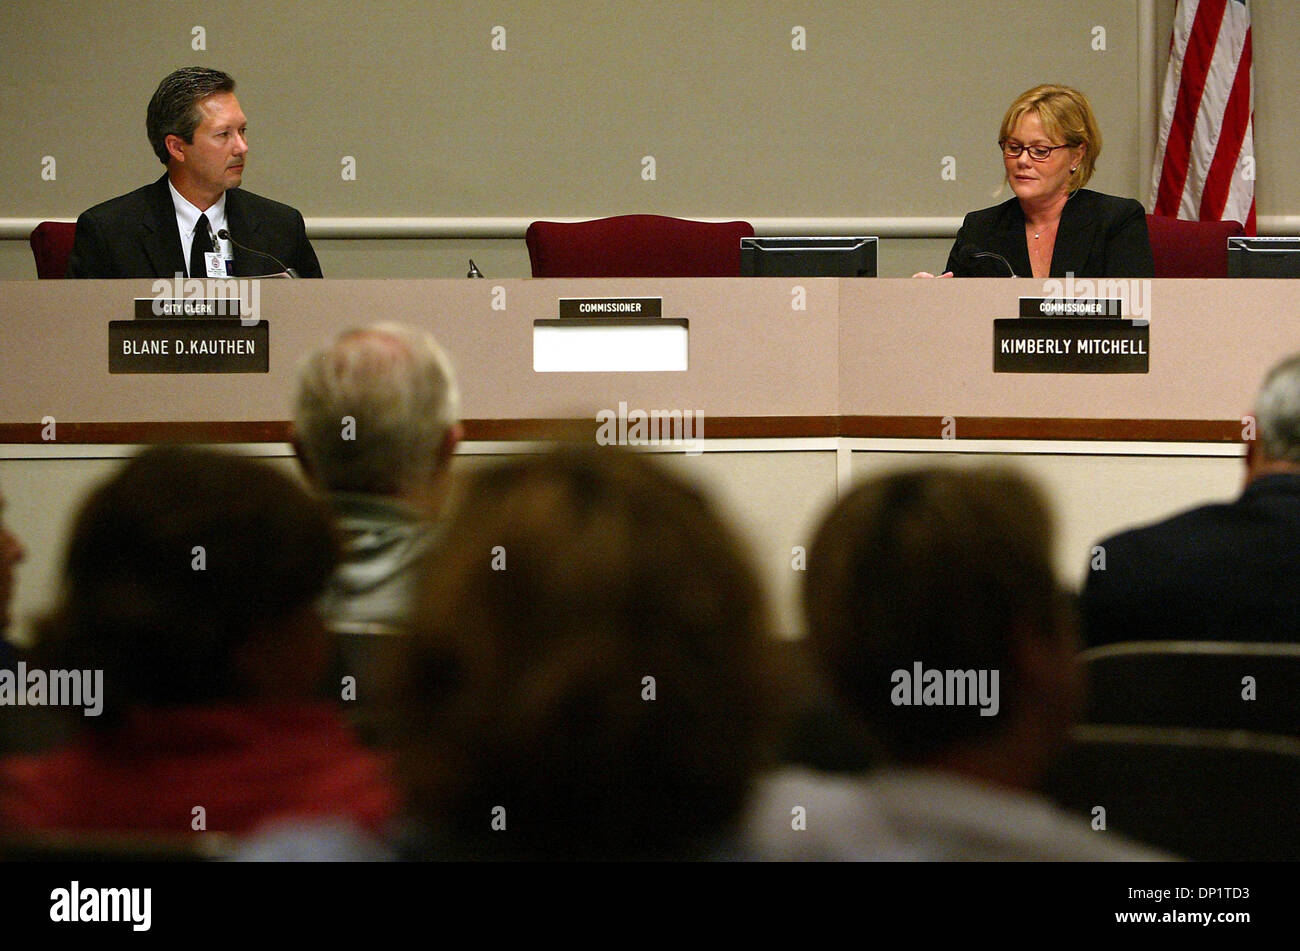 May 08, 2006; West Palm Beach, FL, USA; On Monday afternoon the absence of Ray Liberti at a commission meeting left an empty space between City Clerk Blane D. Kauthen and Commissioner Kimberly Mitchell. Mandatory Credit: Photo by Uma Sanghvi/Palm Beach Post/ZUMA Press. (©) Copyright 2006 by Palm Beach Post - Stock Image